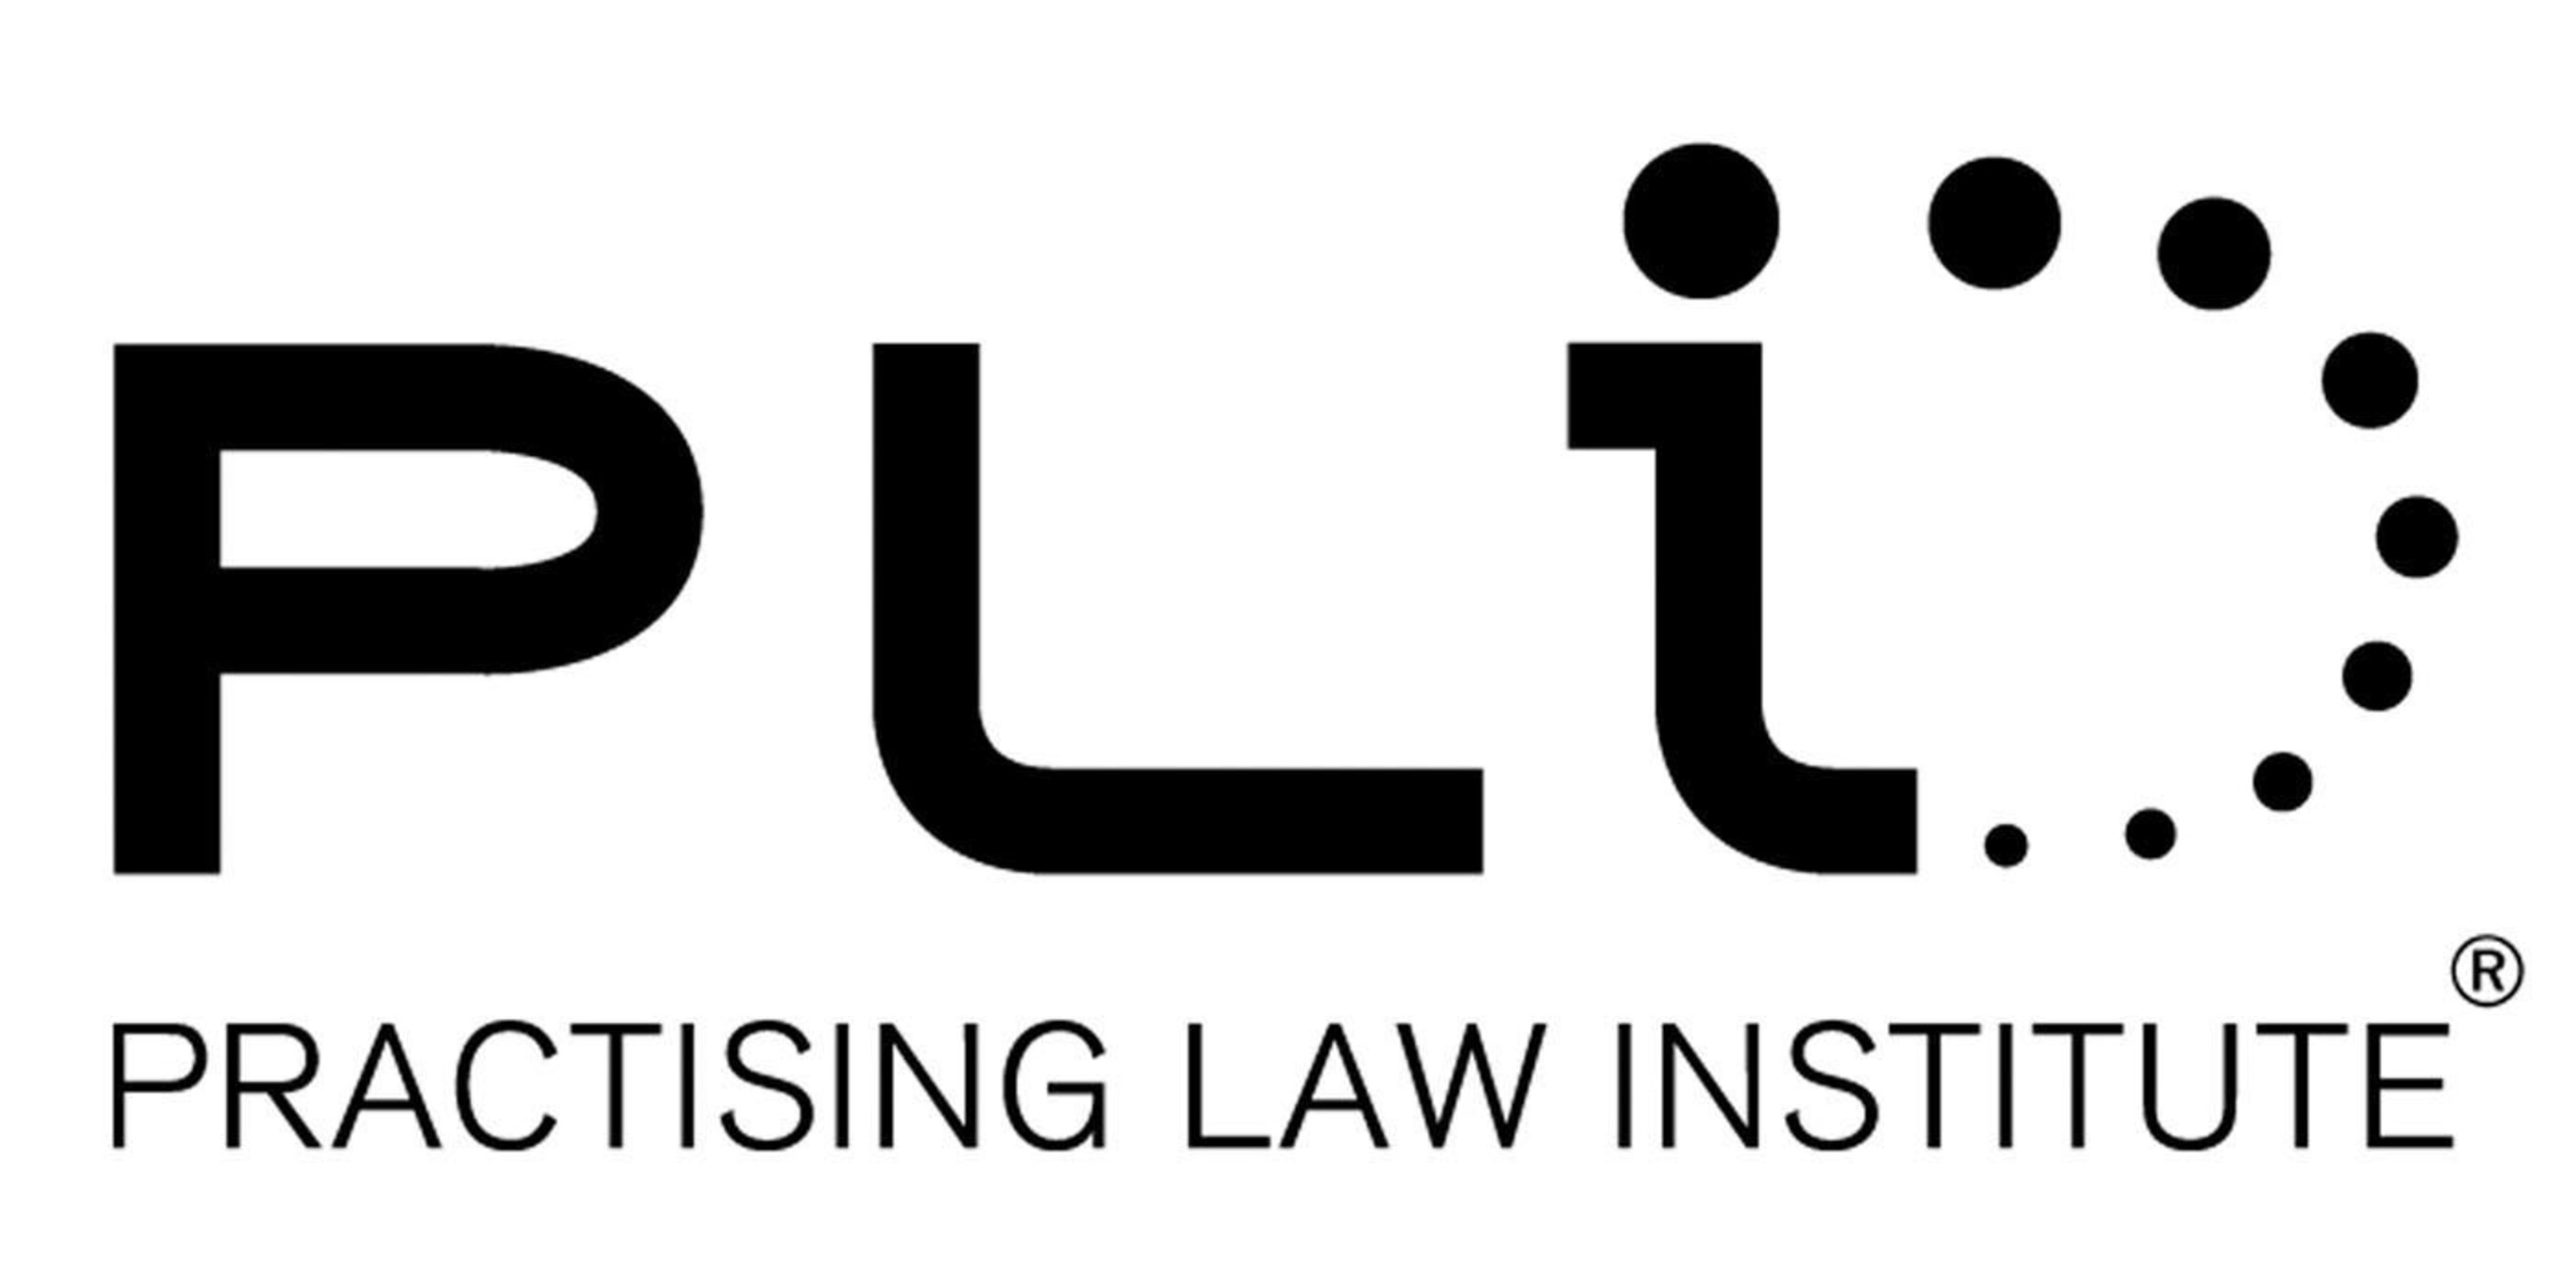 PLI Publishes Cybersecurity, The First Major Legal